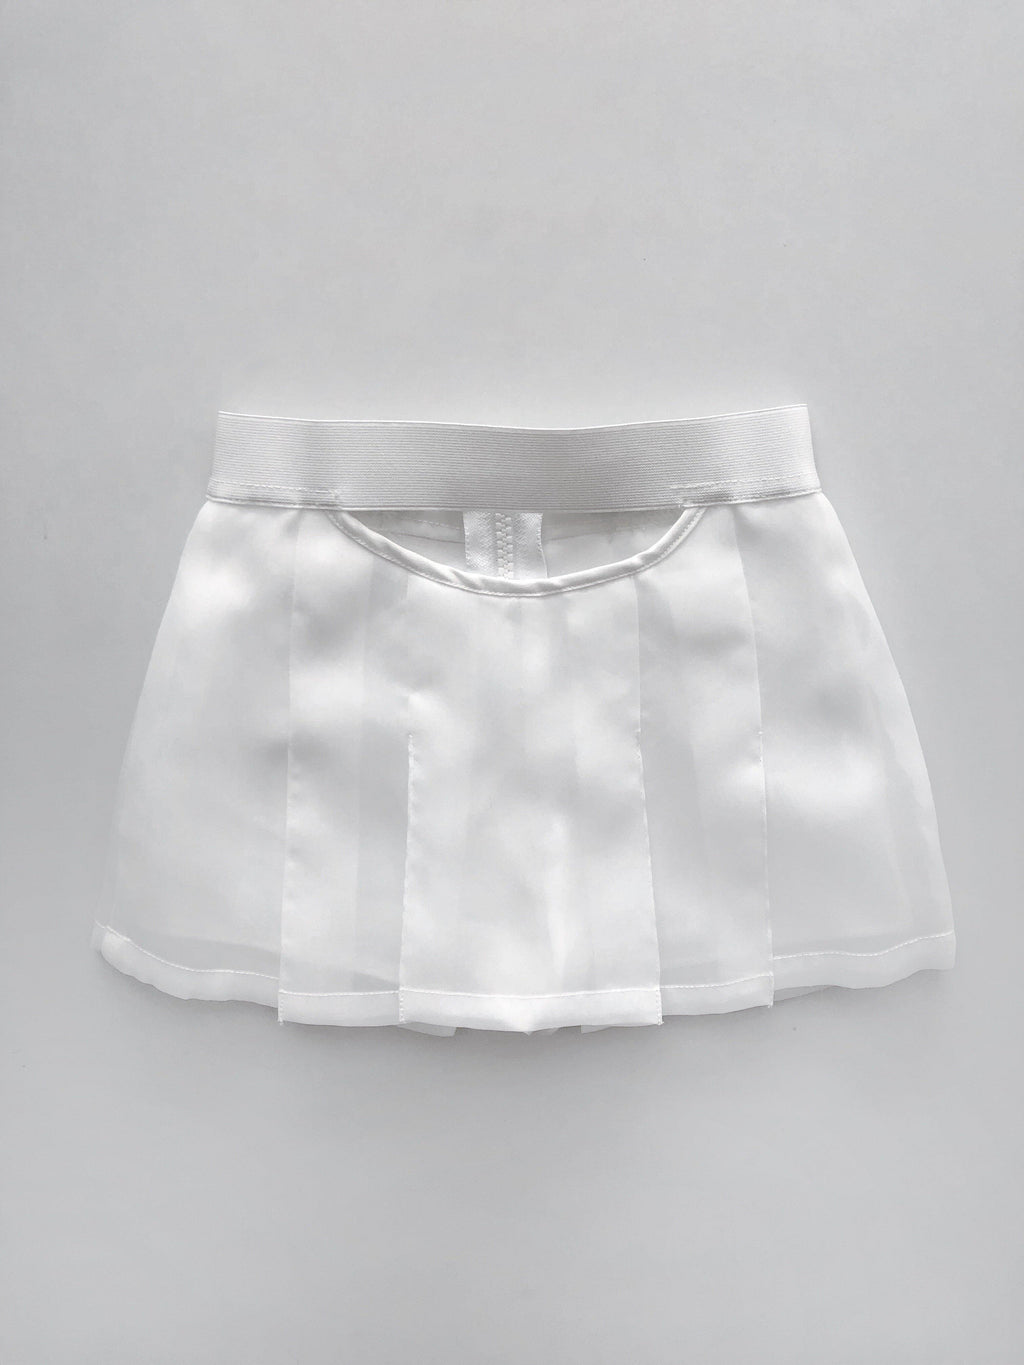 Half Light Skort (Kids)